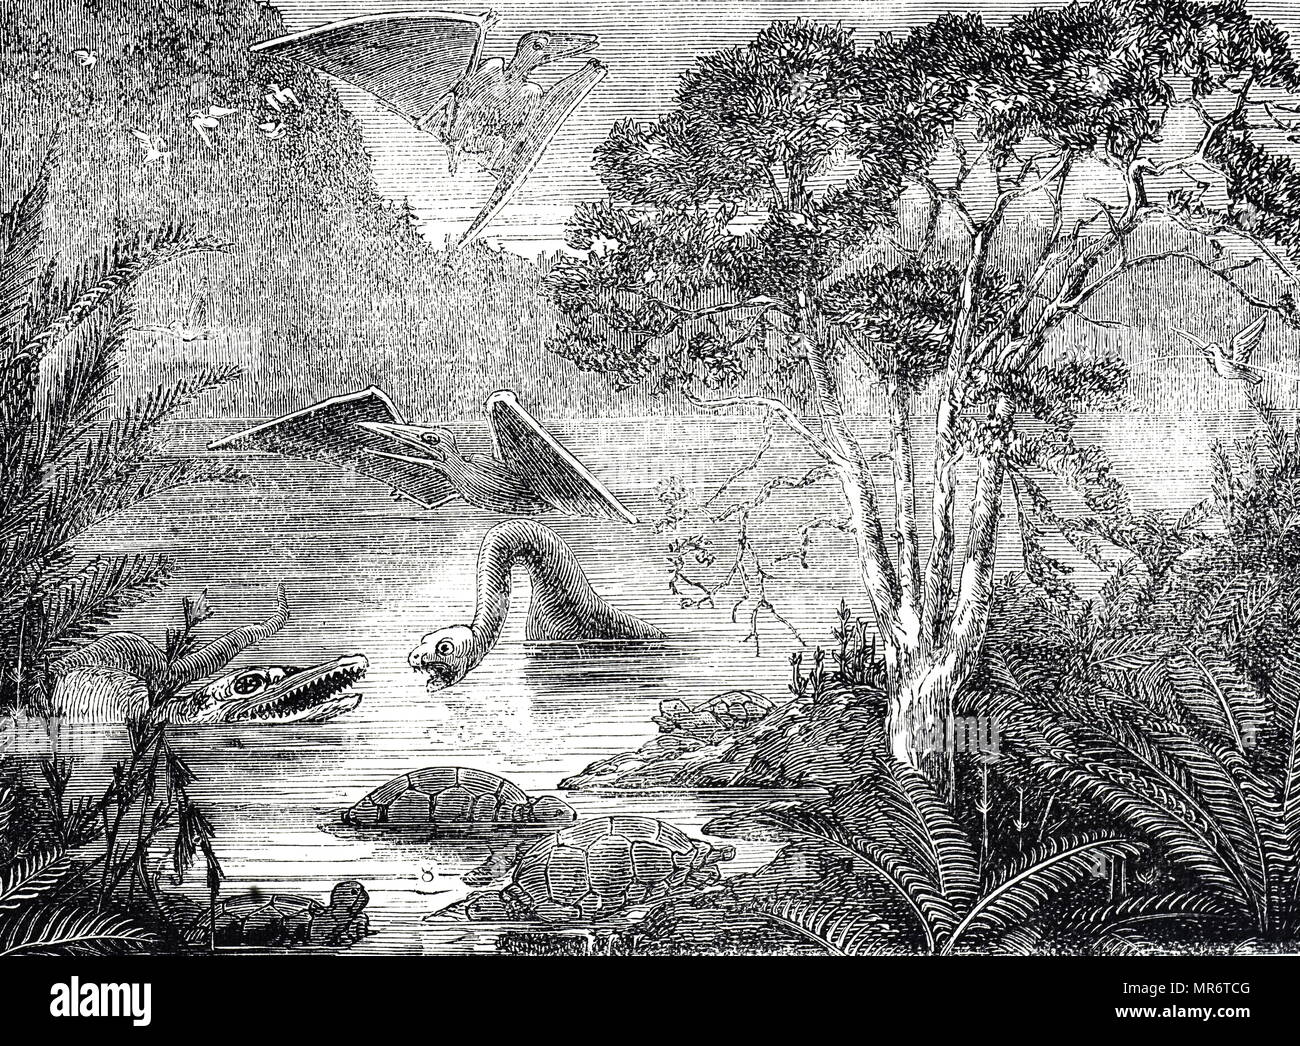 Engraving depicting the ideal Flora and Fauna of the Upper Cretaceous period. Dated 19th century - Stock Image